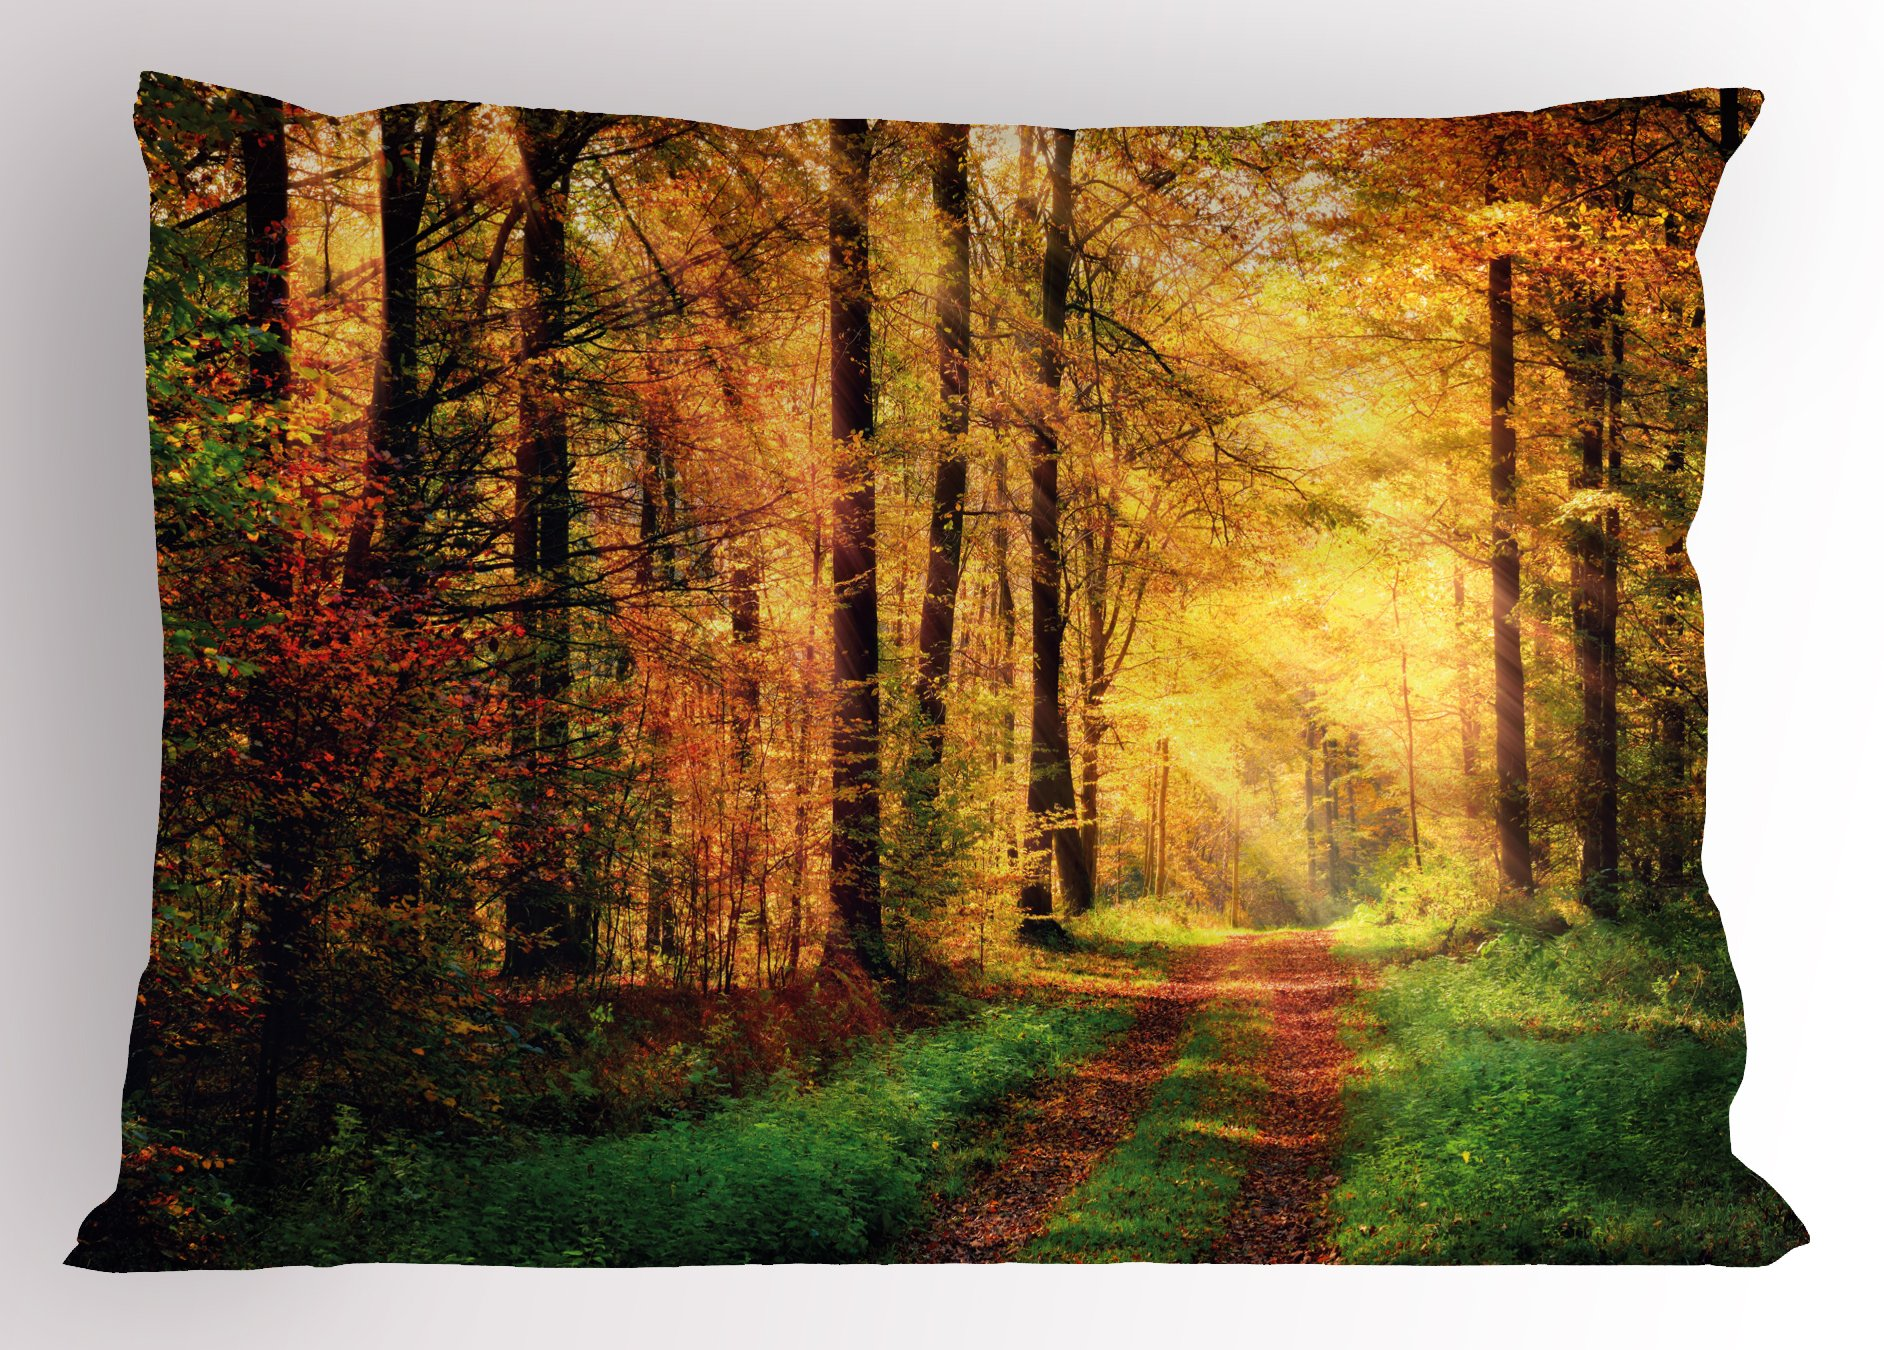 Lunarable Modern Pillow Sham, Autumn Forest Scenery with Rays of Warm Sun on Shady Trees Woods Warm Feelings Art, Decorative Standard Size Printed Pillowcase, 26 X 20 inches, Yellow Green